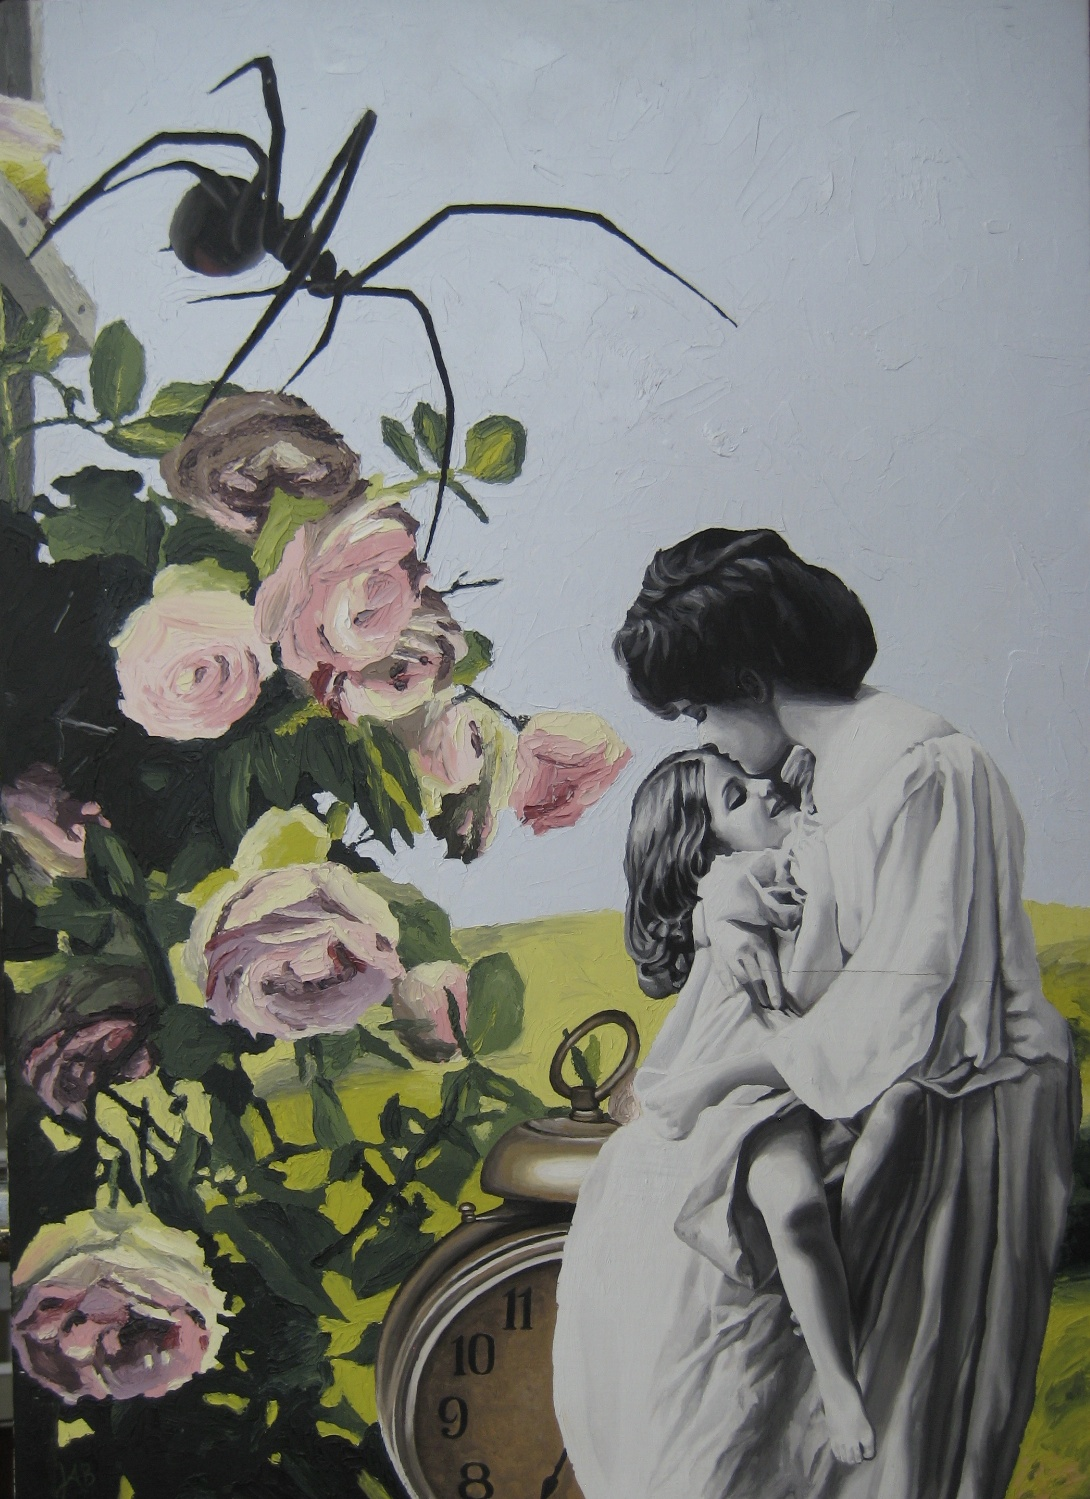 Untitled, oil on board. Justine Barbuto